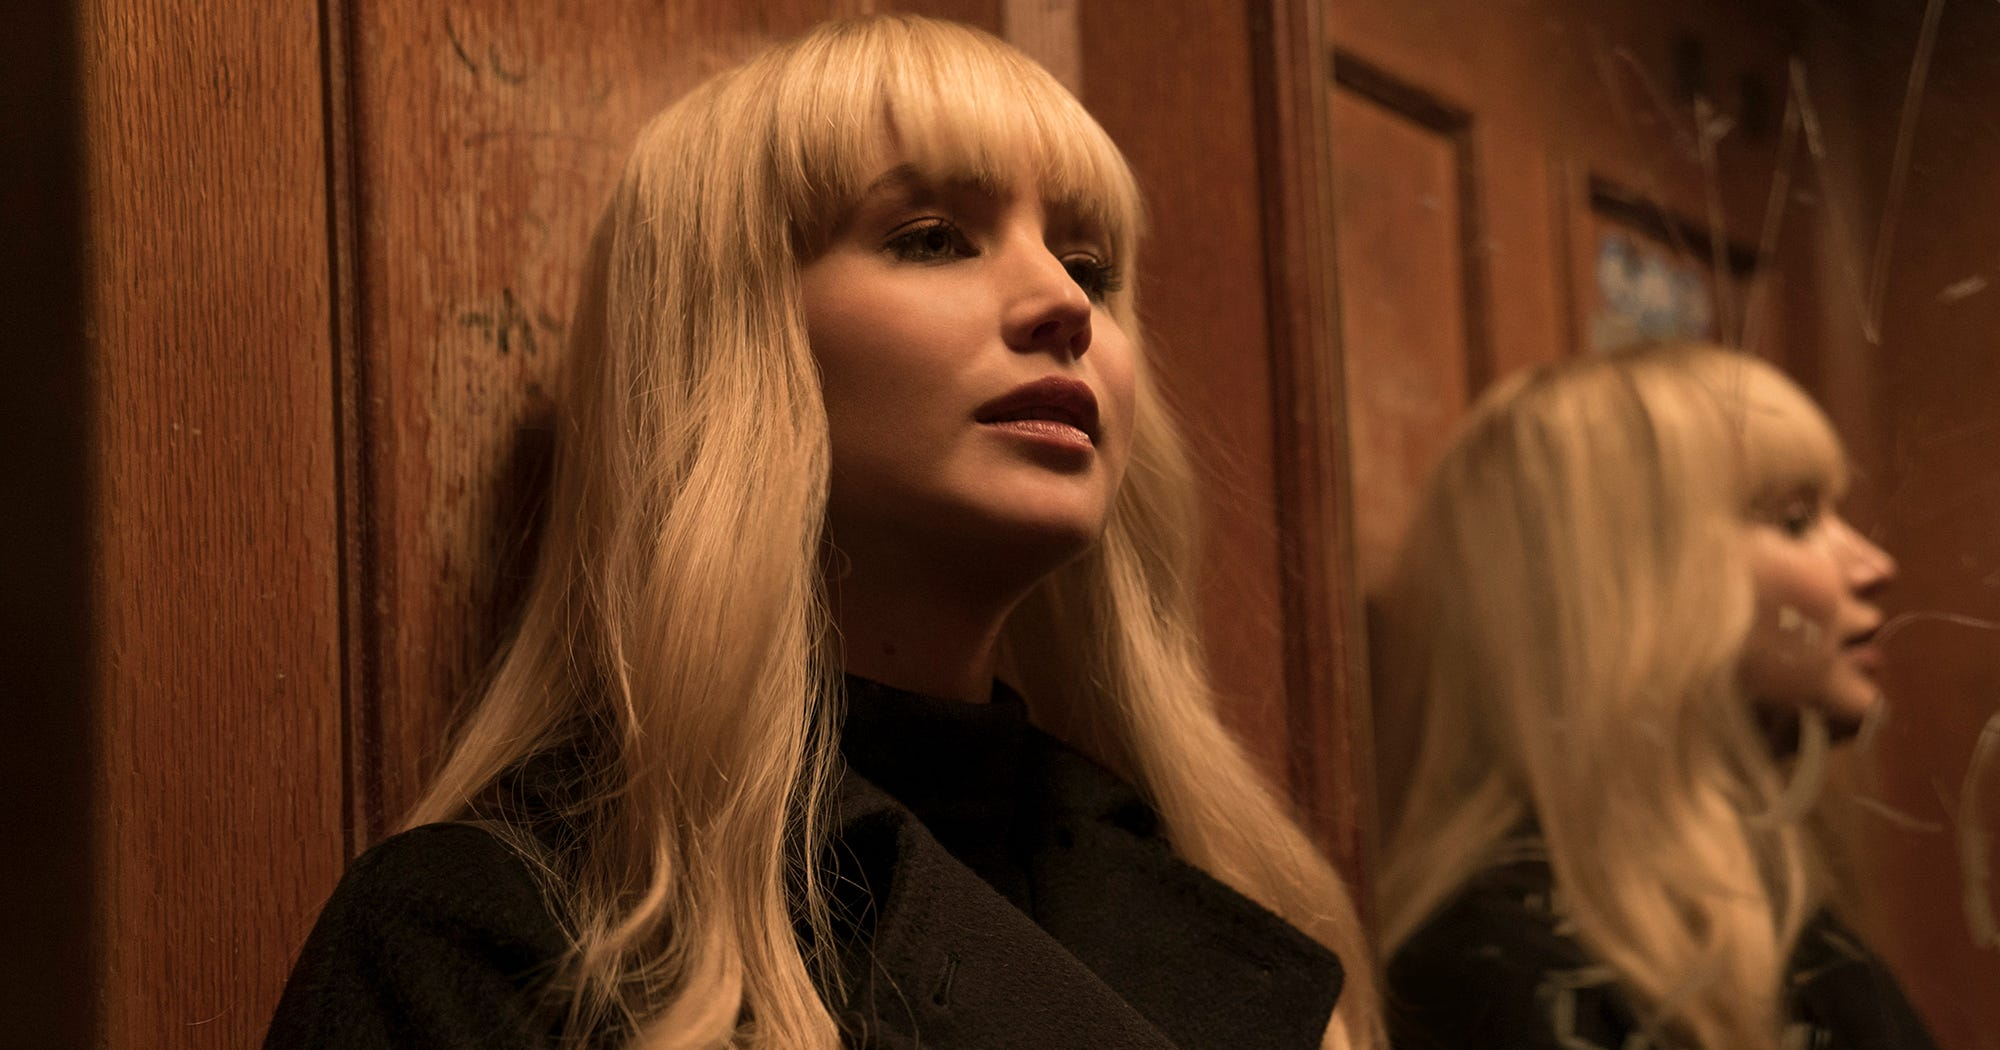 Red Sparrow Review: An Almost Too Brutal Tale Of Female Empowerment